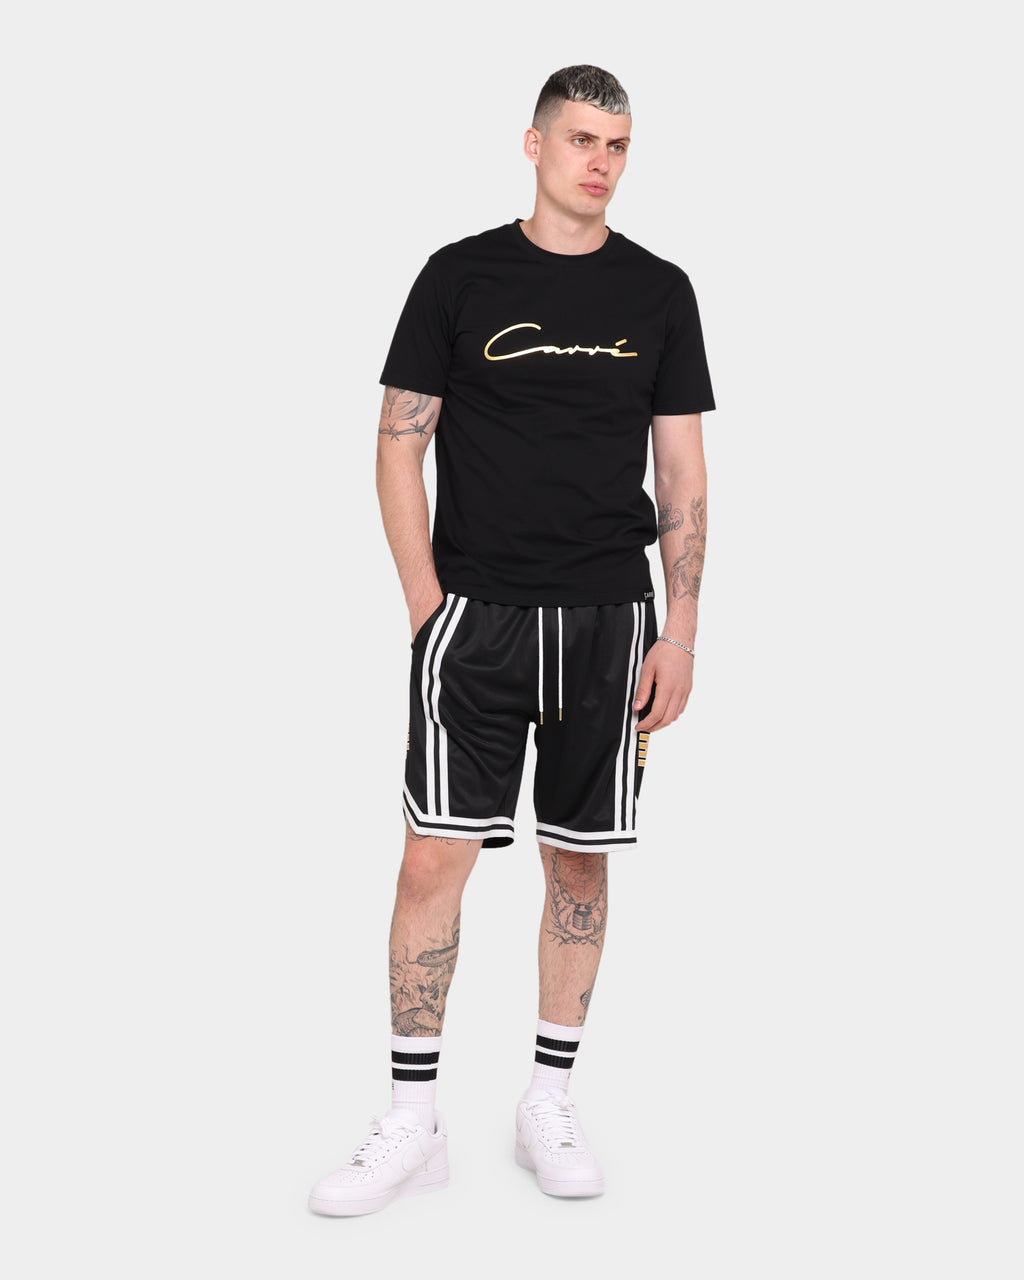 Carré Mono Ball Shorts Black/Gold